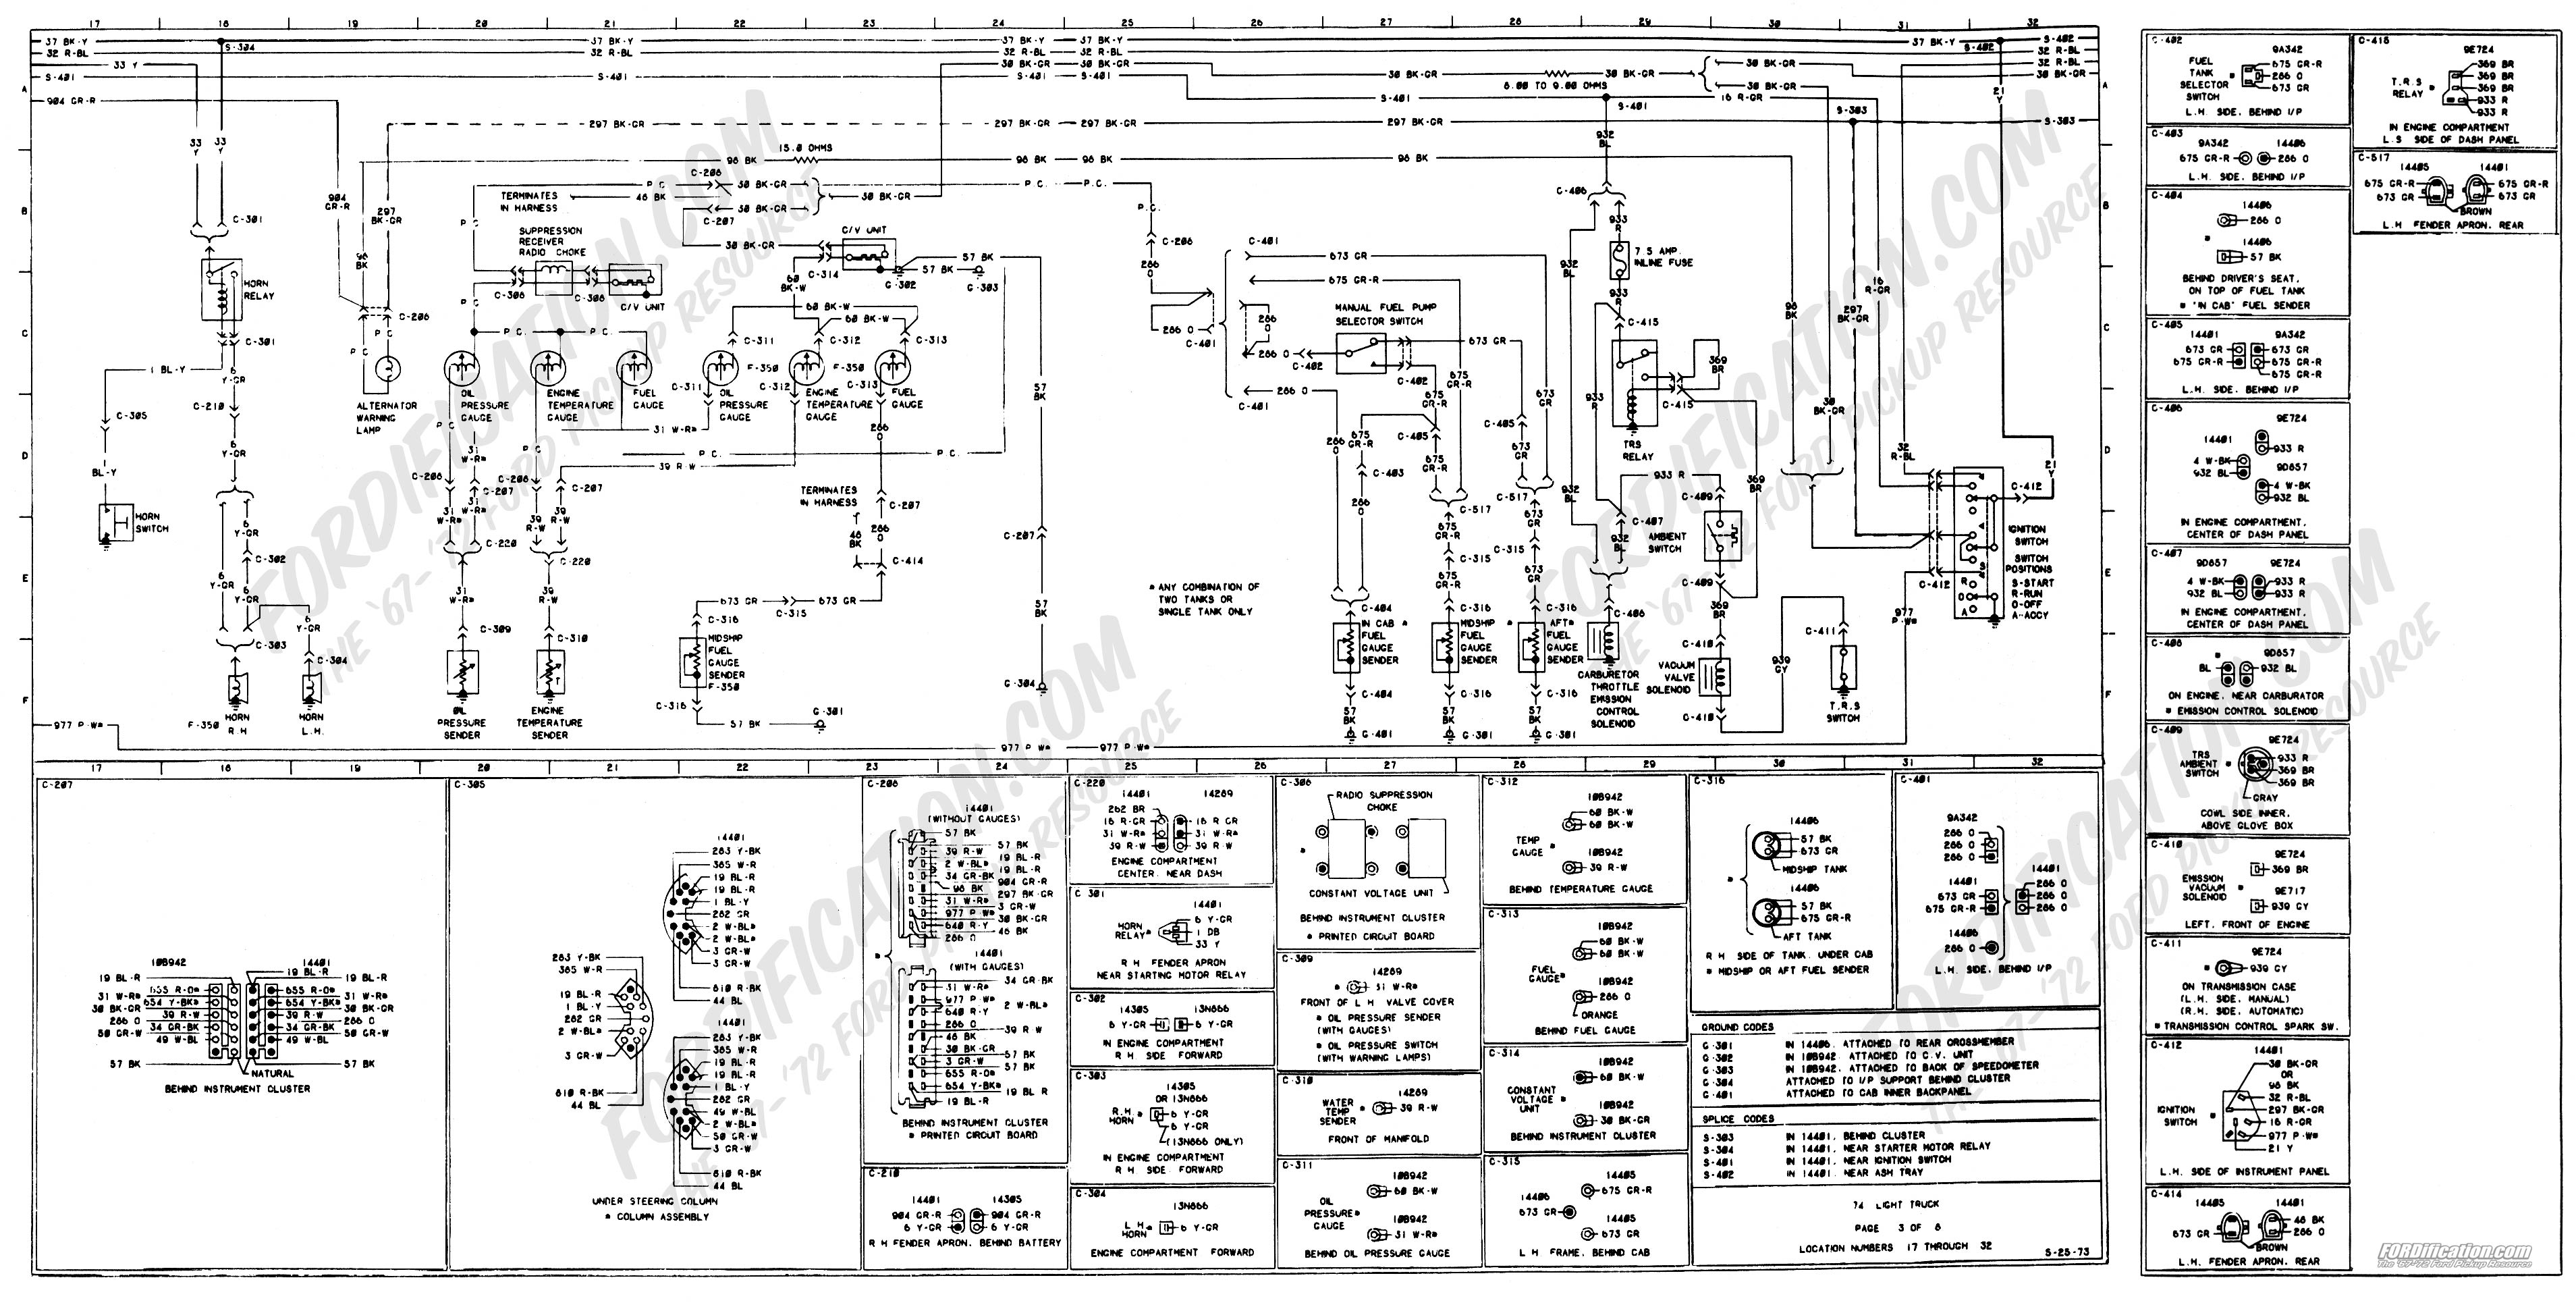 Ford F700 Alternator Wiring Schematic Diagram Libraries 1973 1979 Truck Diagrams U0026 Schematics Fordification Netford